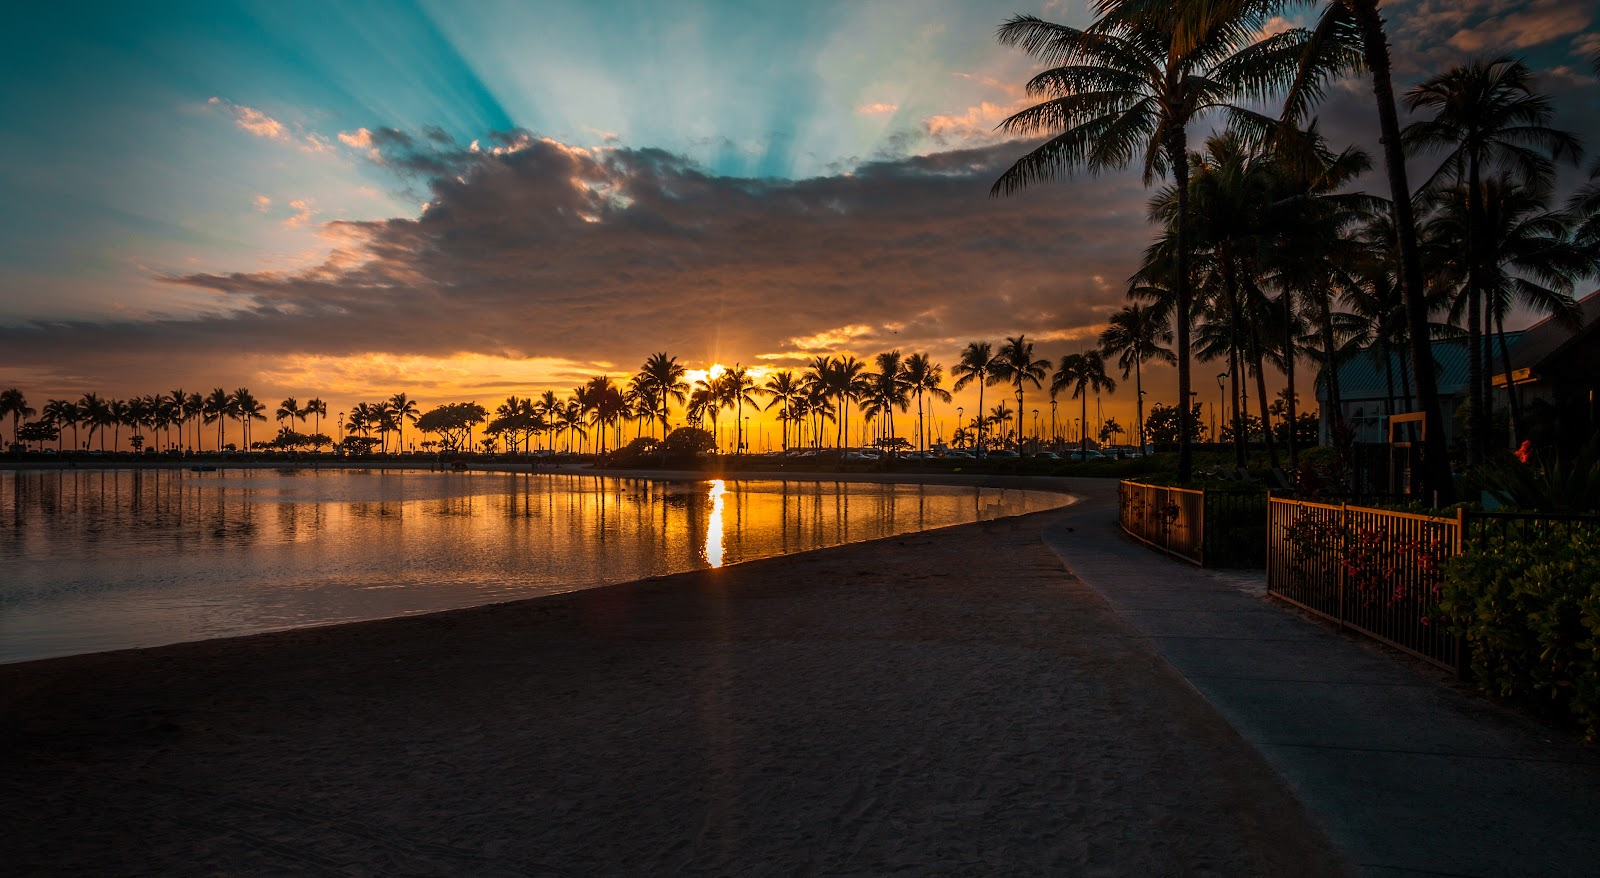 A resort in Hawaii at sunset with palm trees